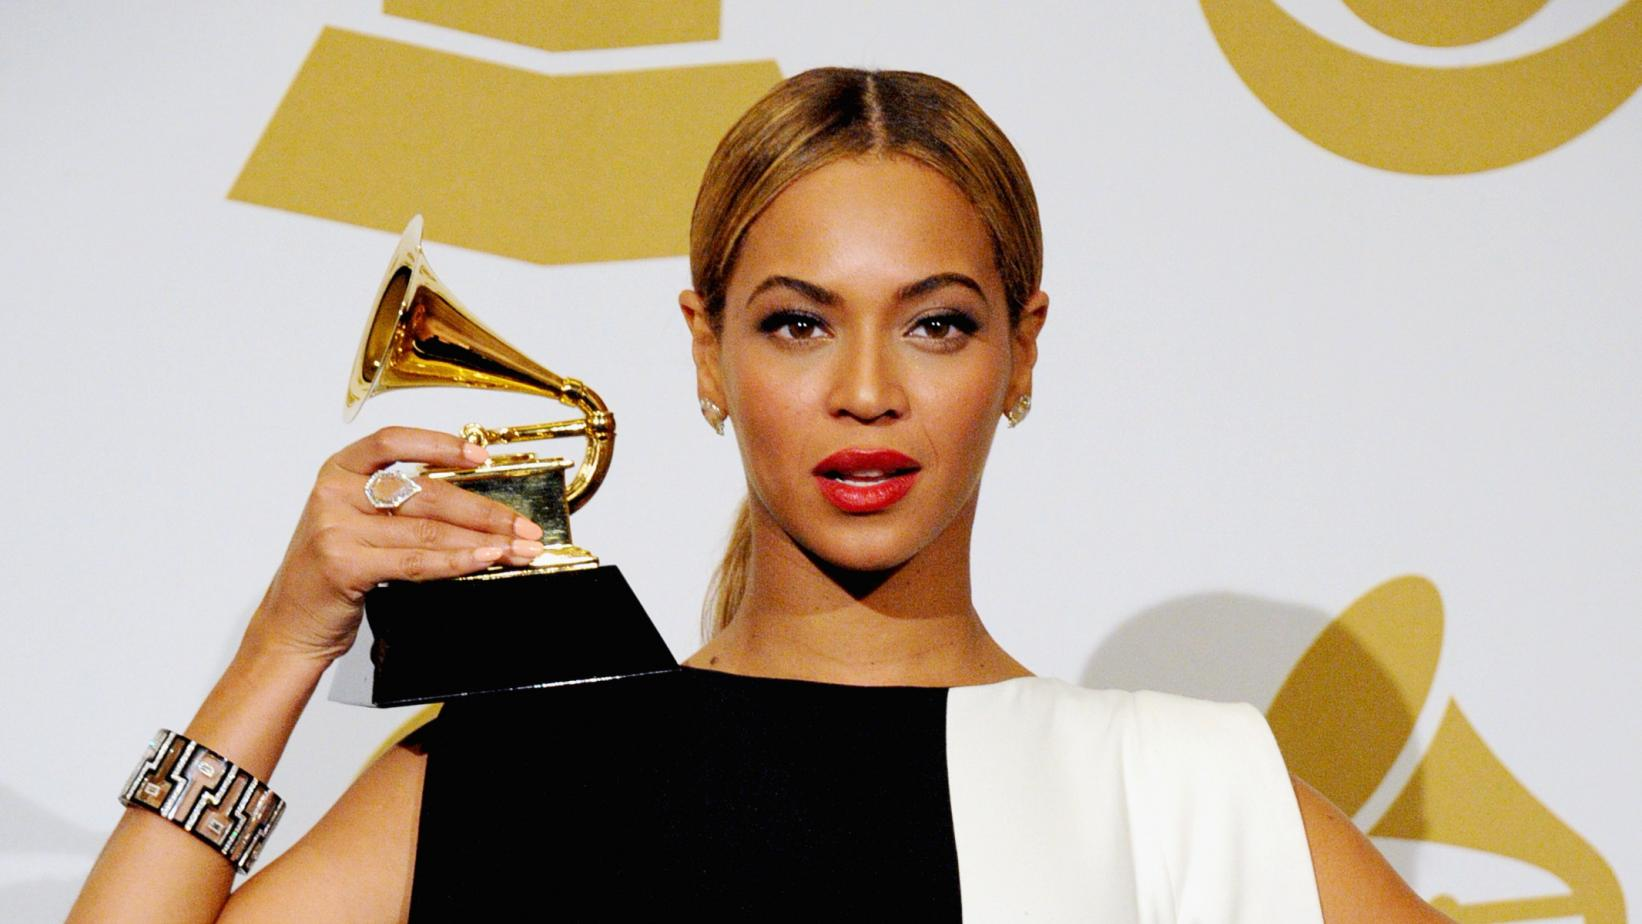 2021 Grammys Postponed In Response to COVID-19